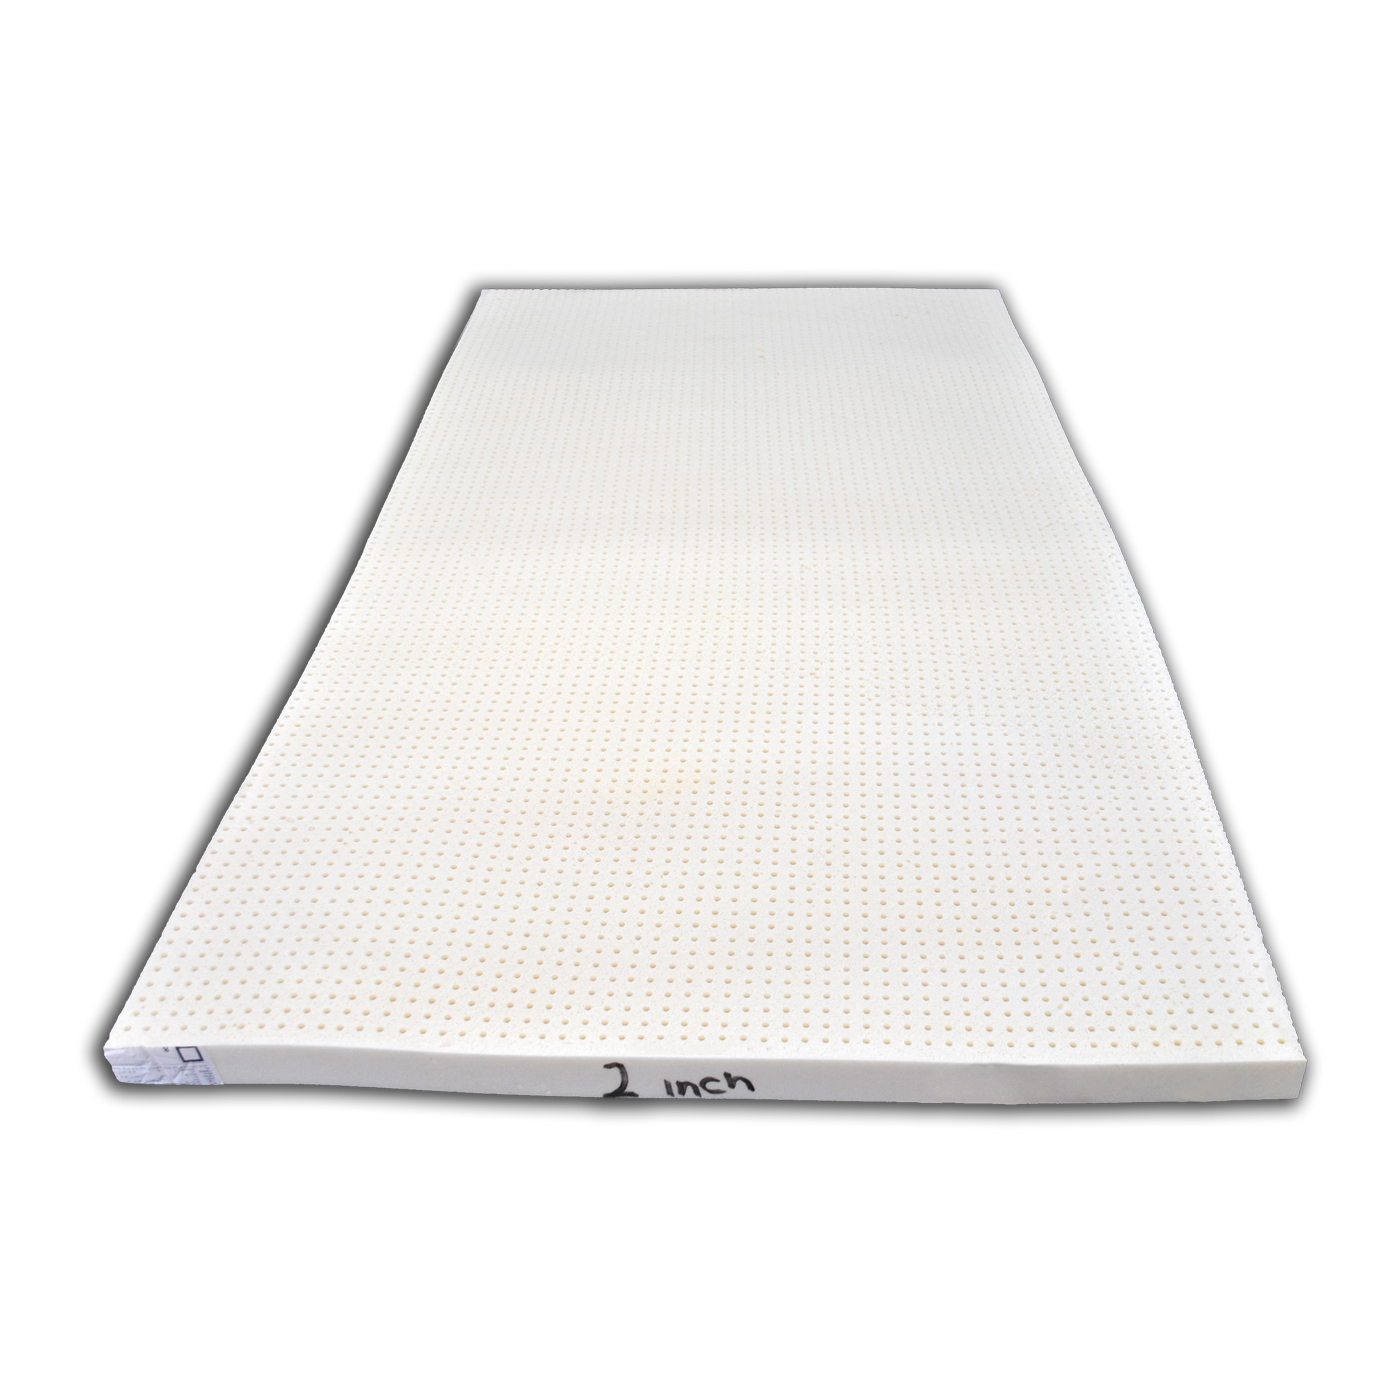 Adjustable Bed Mattress Pad : Phoenix az xxl adjustable bed bottom fitted sheets